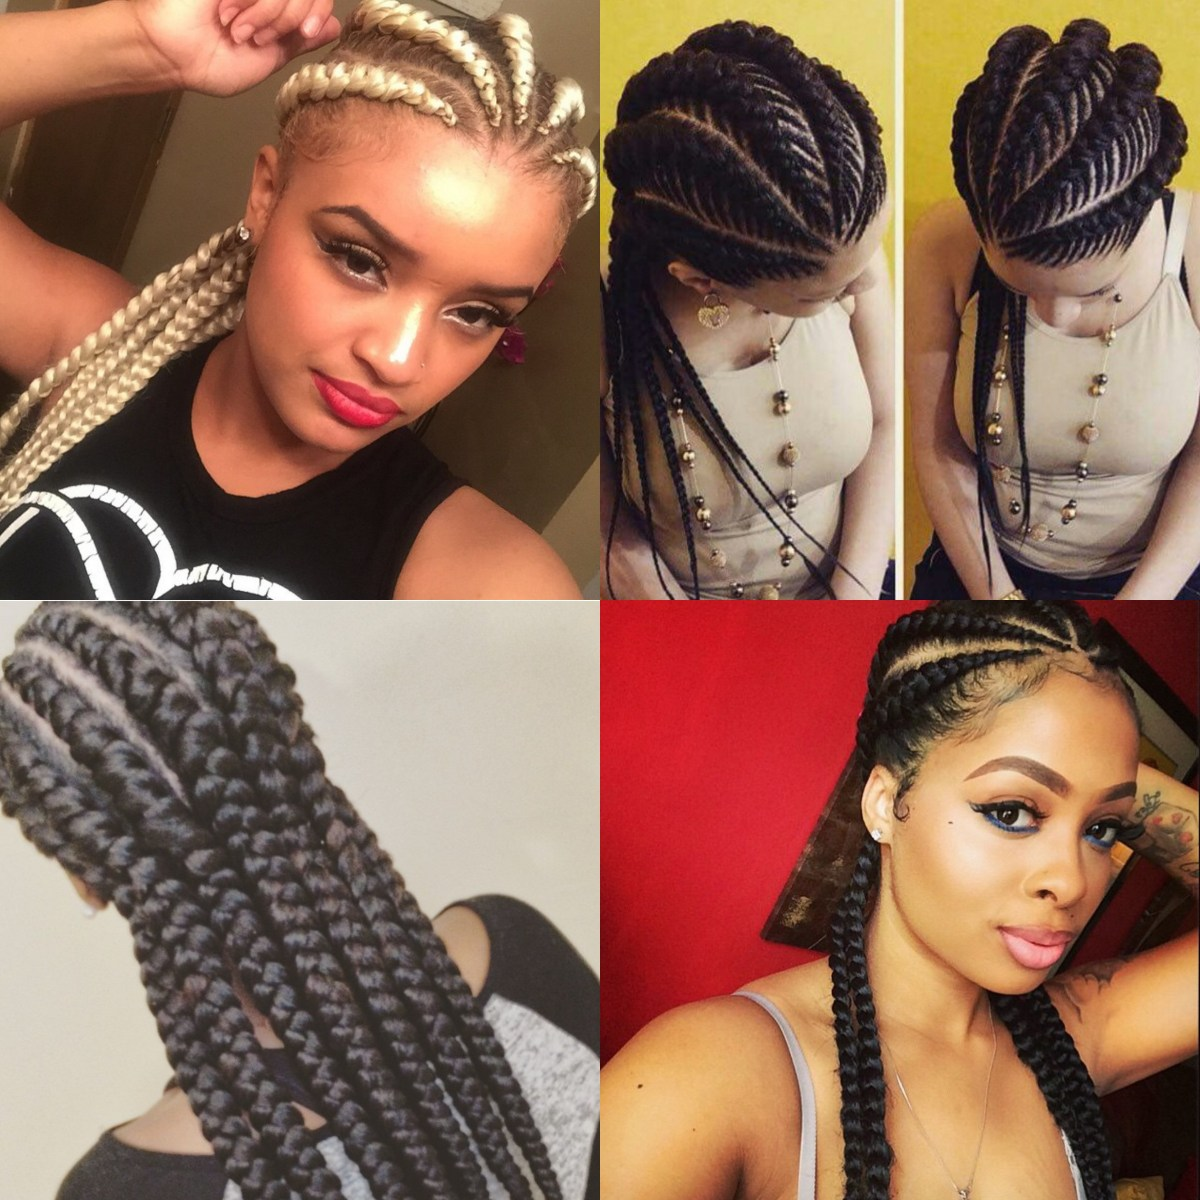 16 Photos Of Ghana Braids, One Of Summer's Hottest Trends